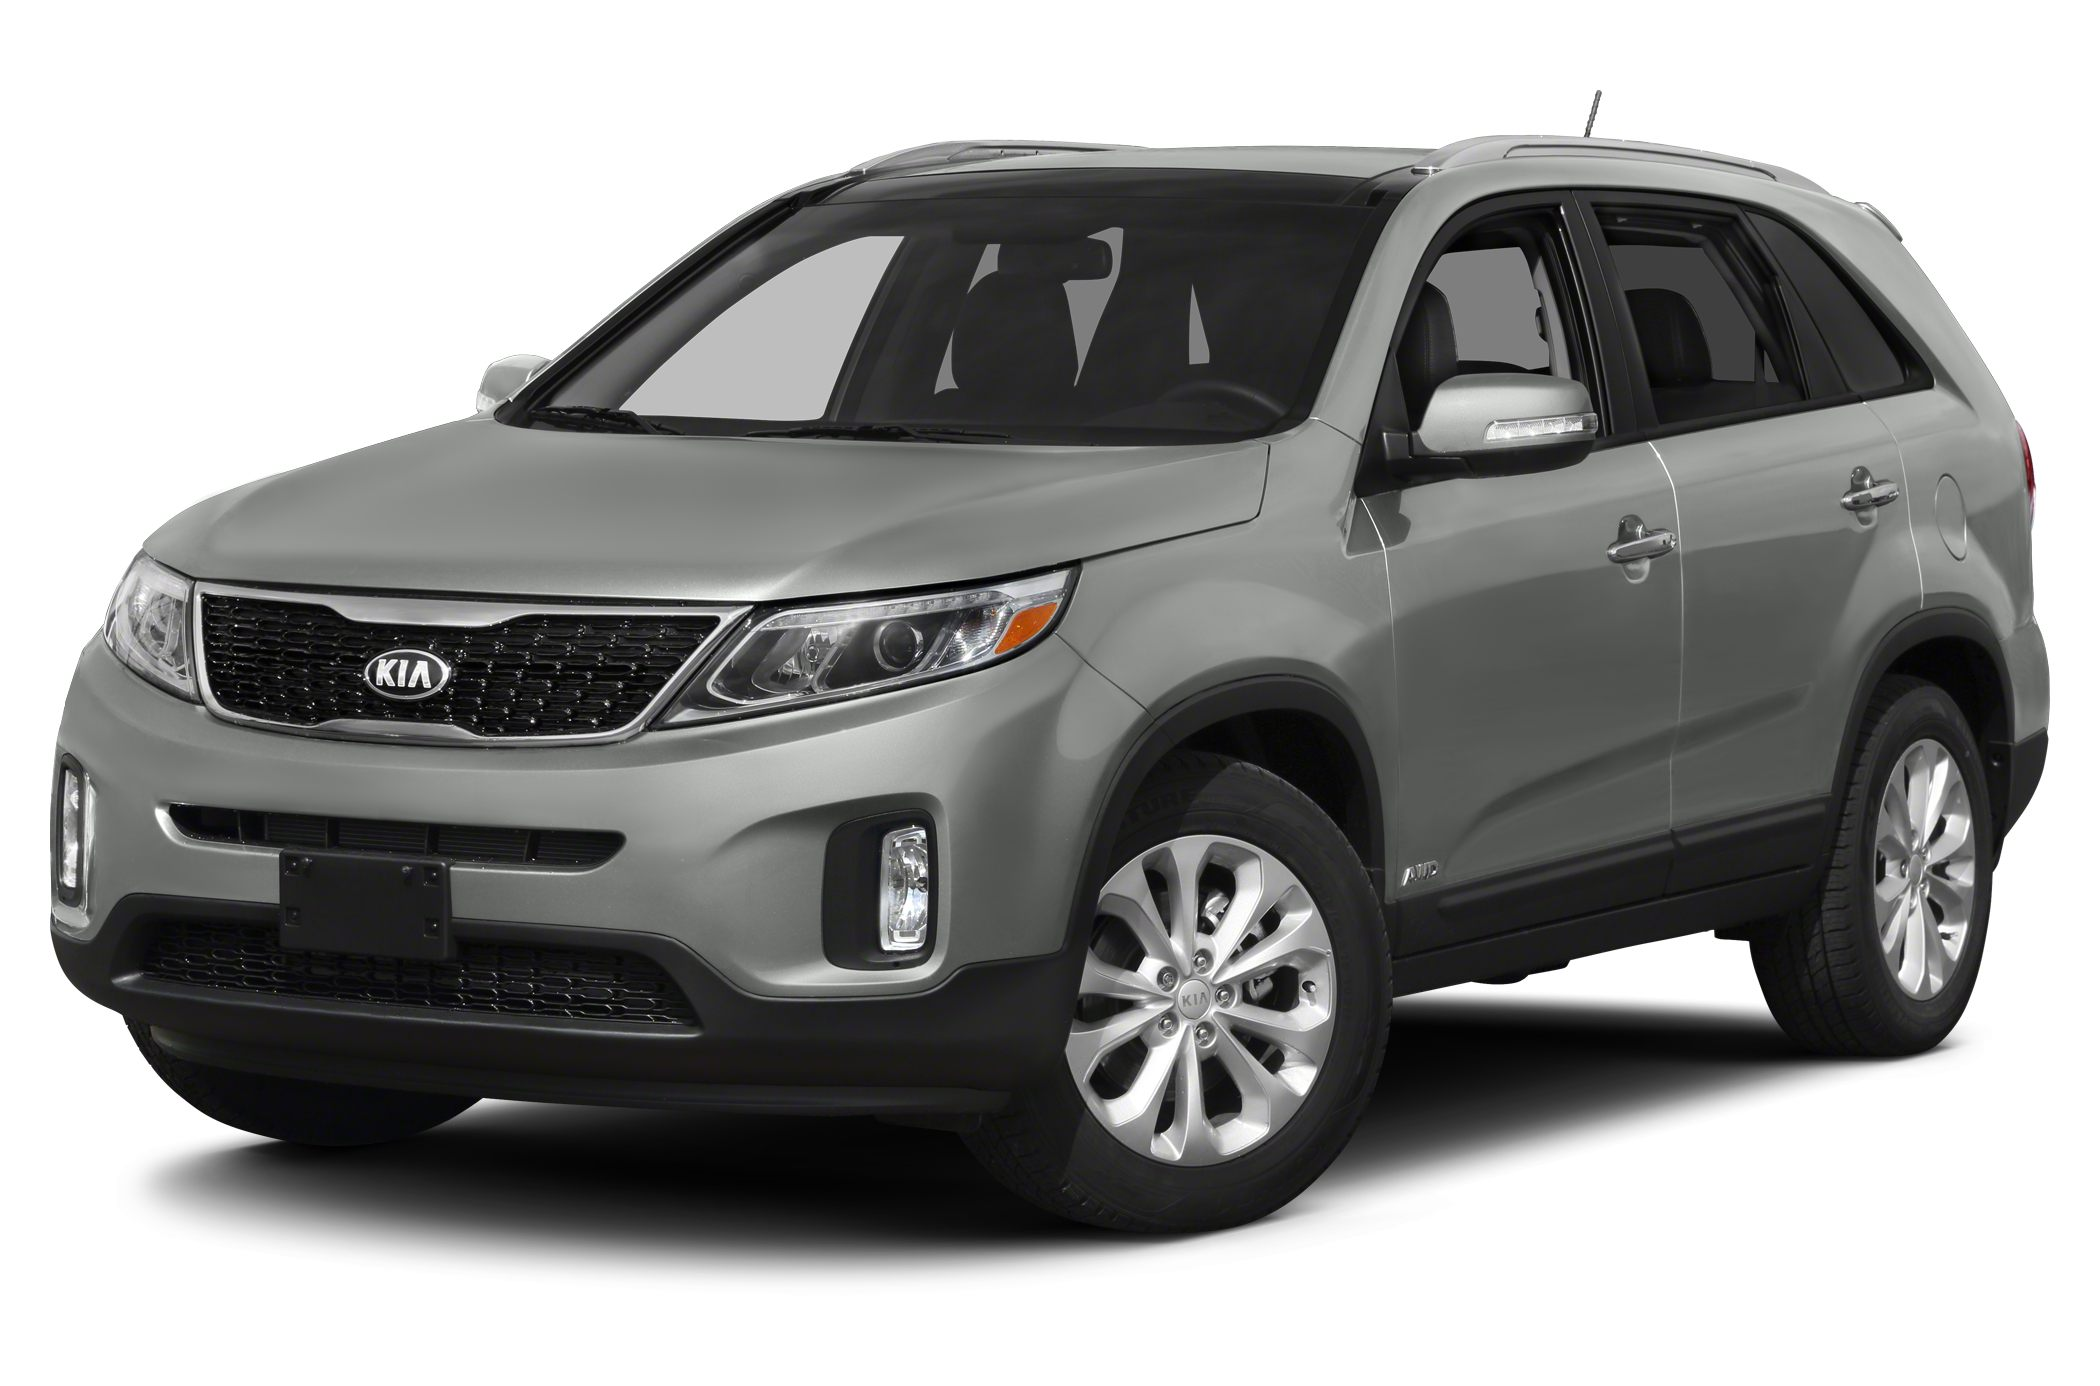 2014 Kia Sorento LX 2014 Kia Sorento LX in Silver and One Year Free Maintanence All Wheel Drive